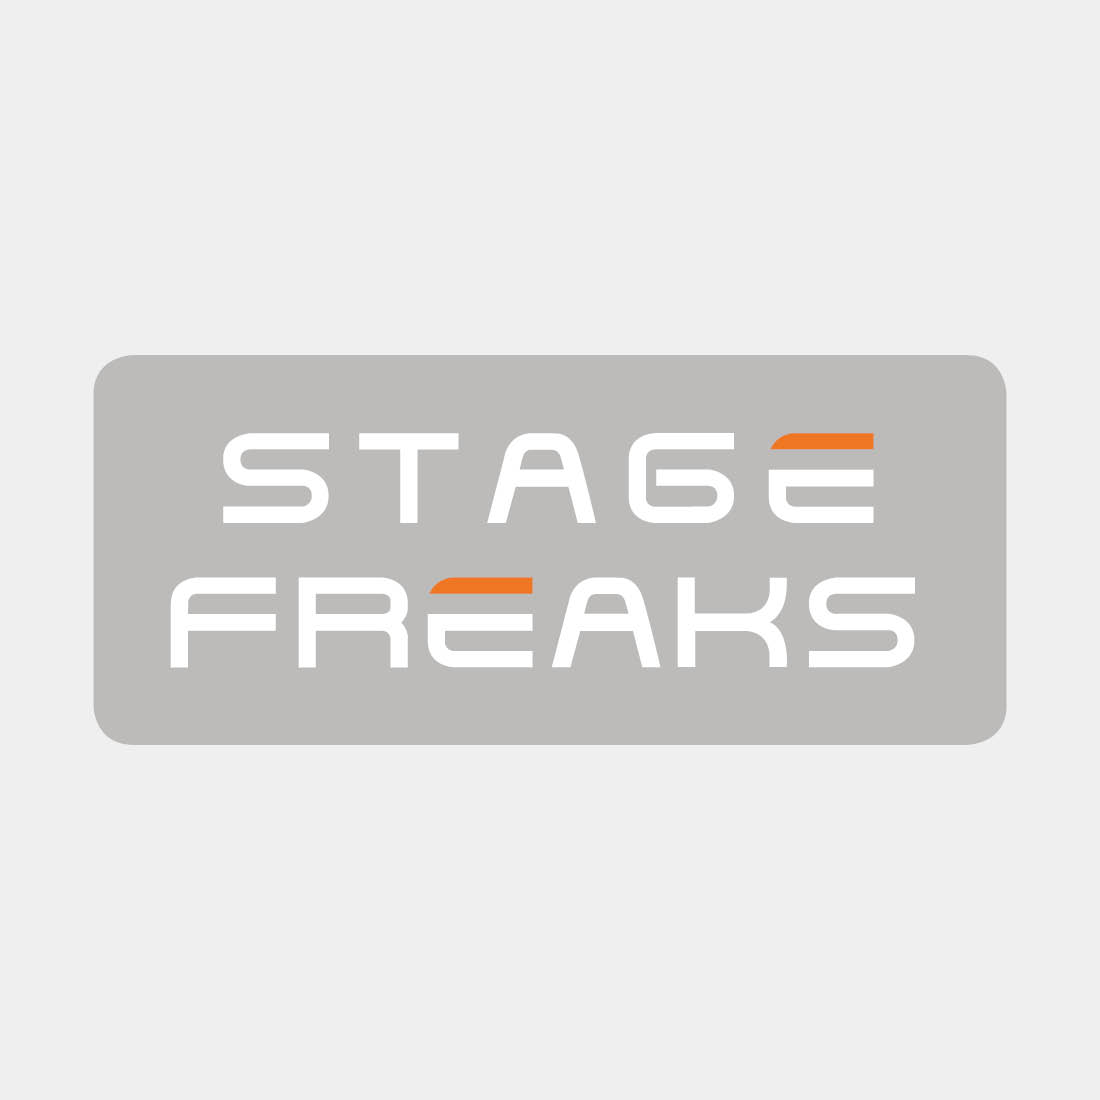 Stagefreaks INCOMPLETE tape 25 mm x 66 m